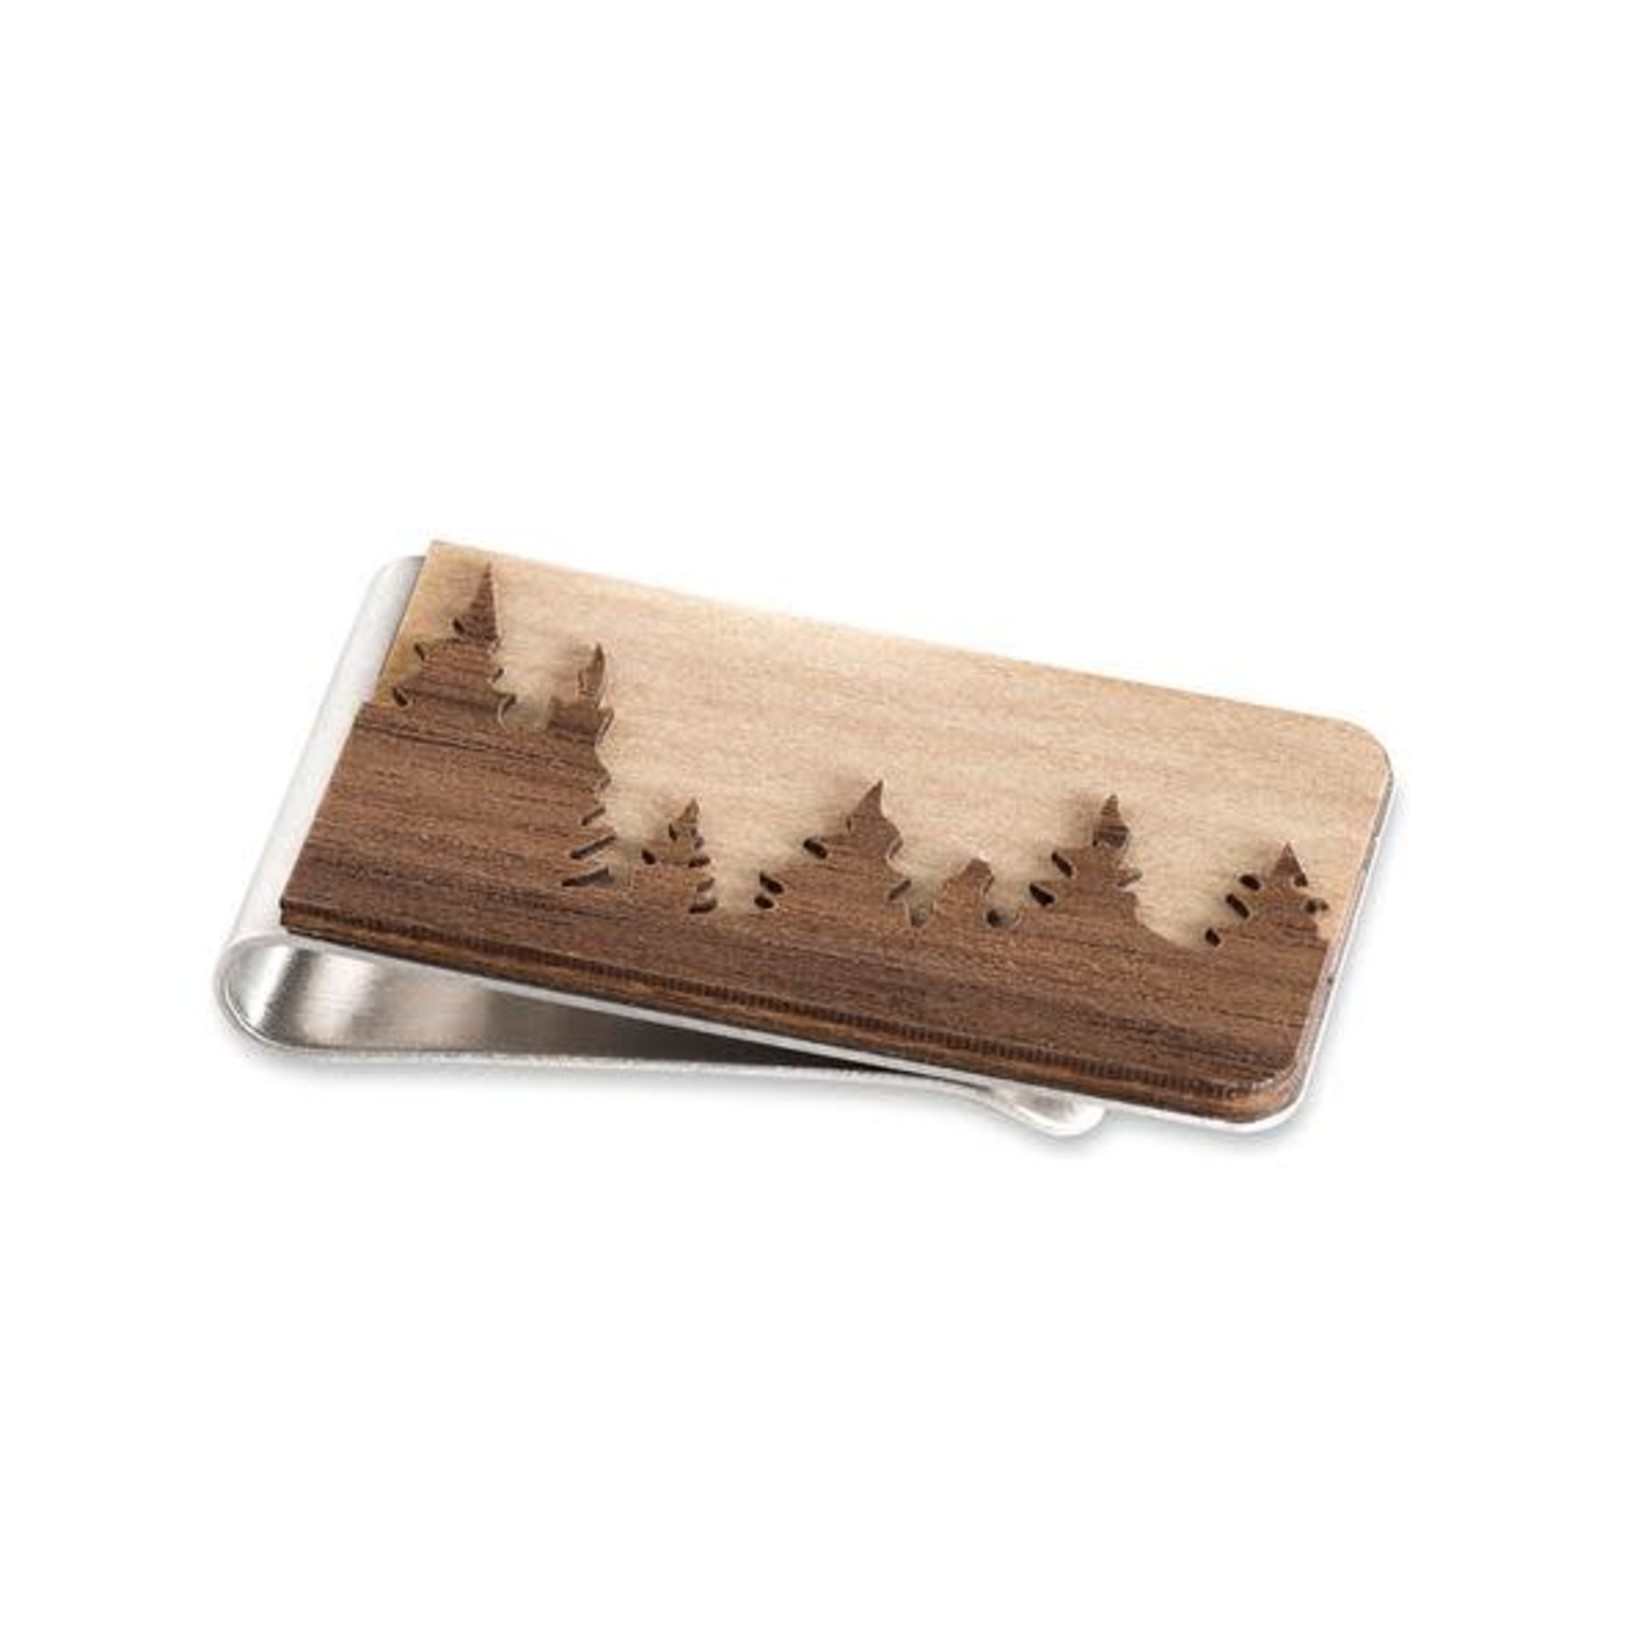 TREELINE AND TIDE MONEY CLIP - FOREST